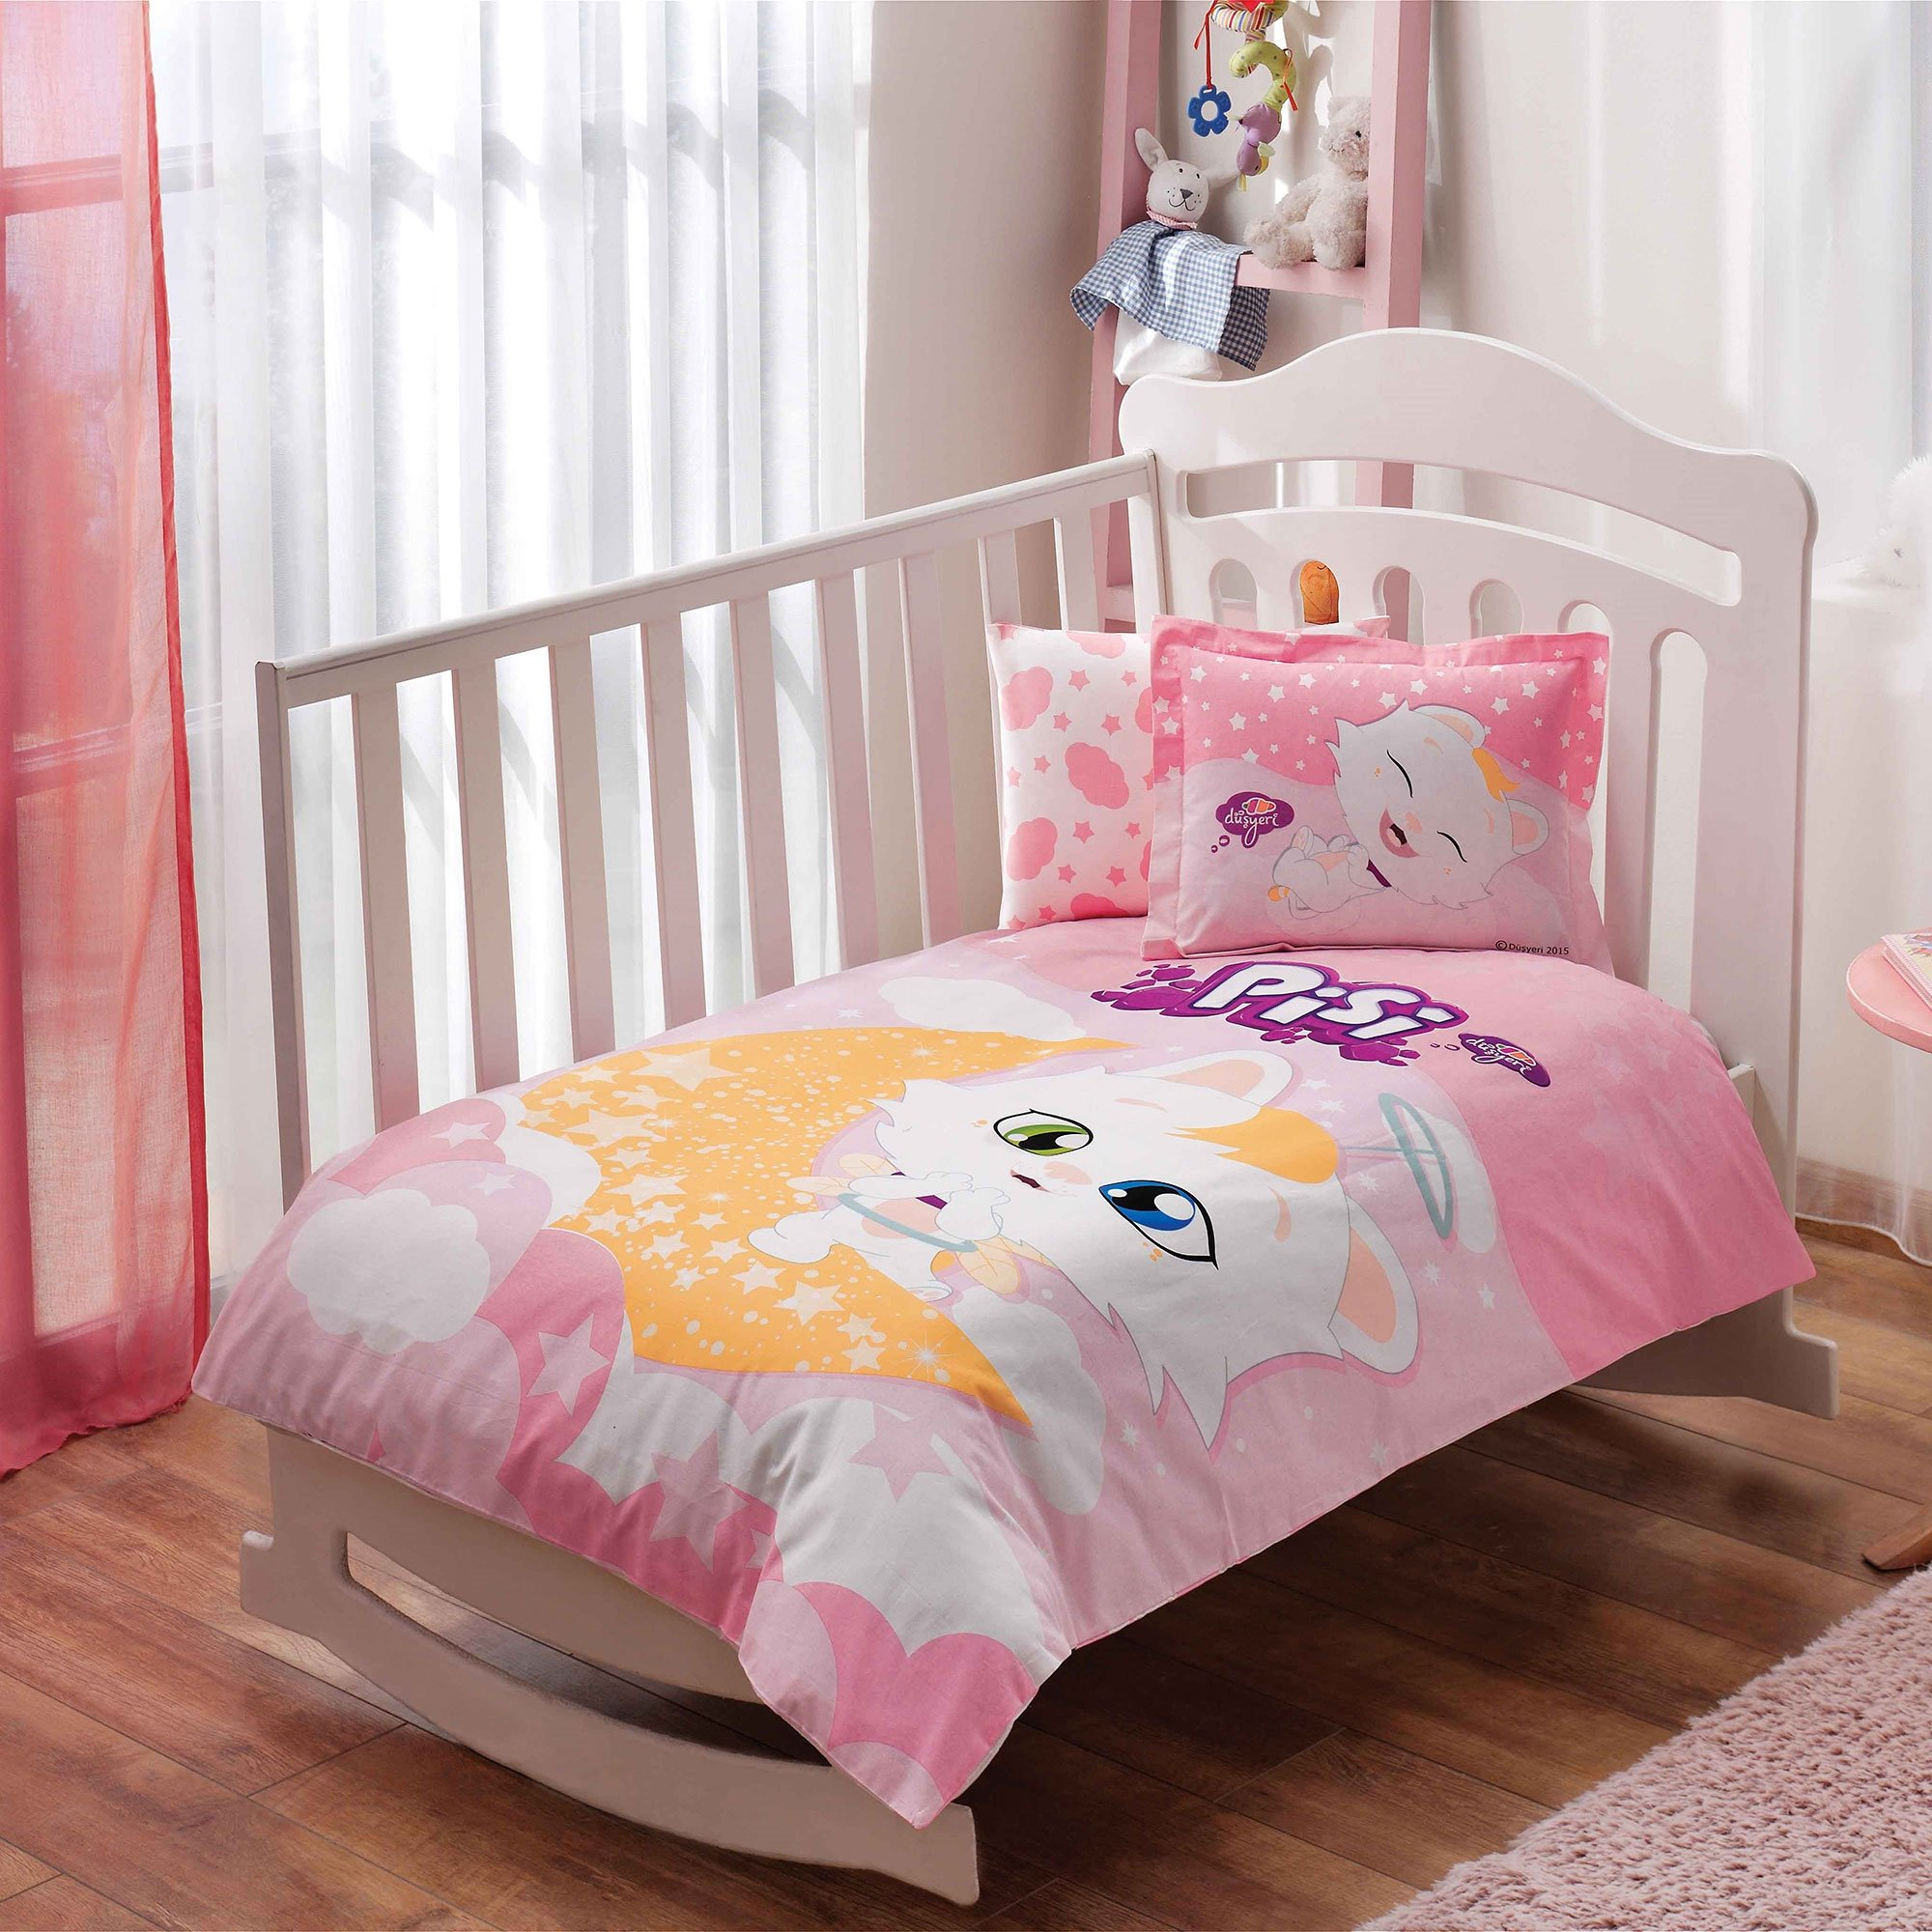 100% Organic Cotton Soft and Healthy Baby Crib Bed Duvet Cover Set 4 Pieces, Pisi Cat Baby Bedding Set